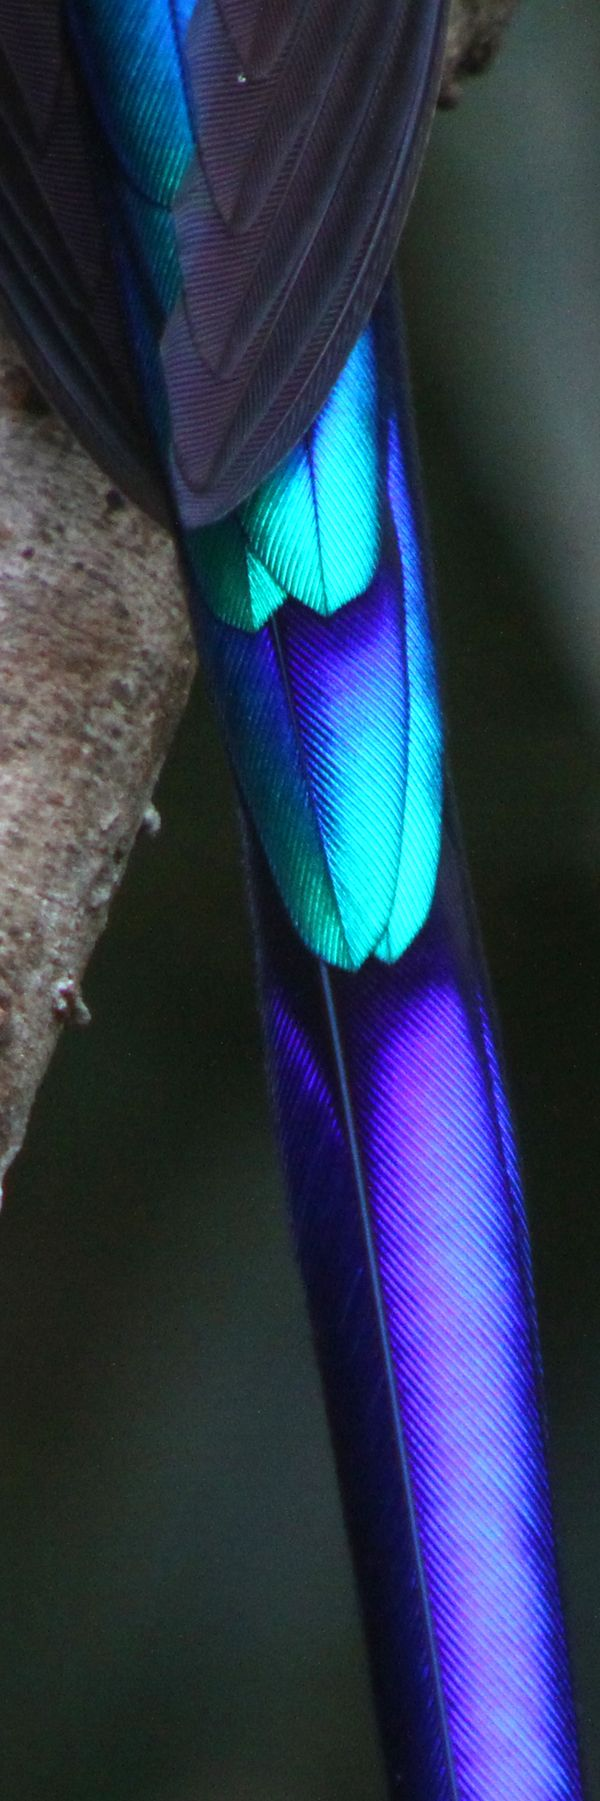 WoW is all I have to say of the close detail up of a Violet tail Syph Hummingbird